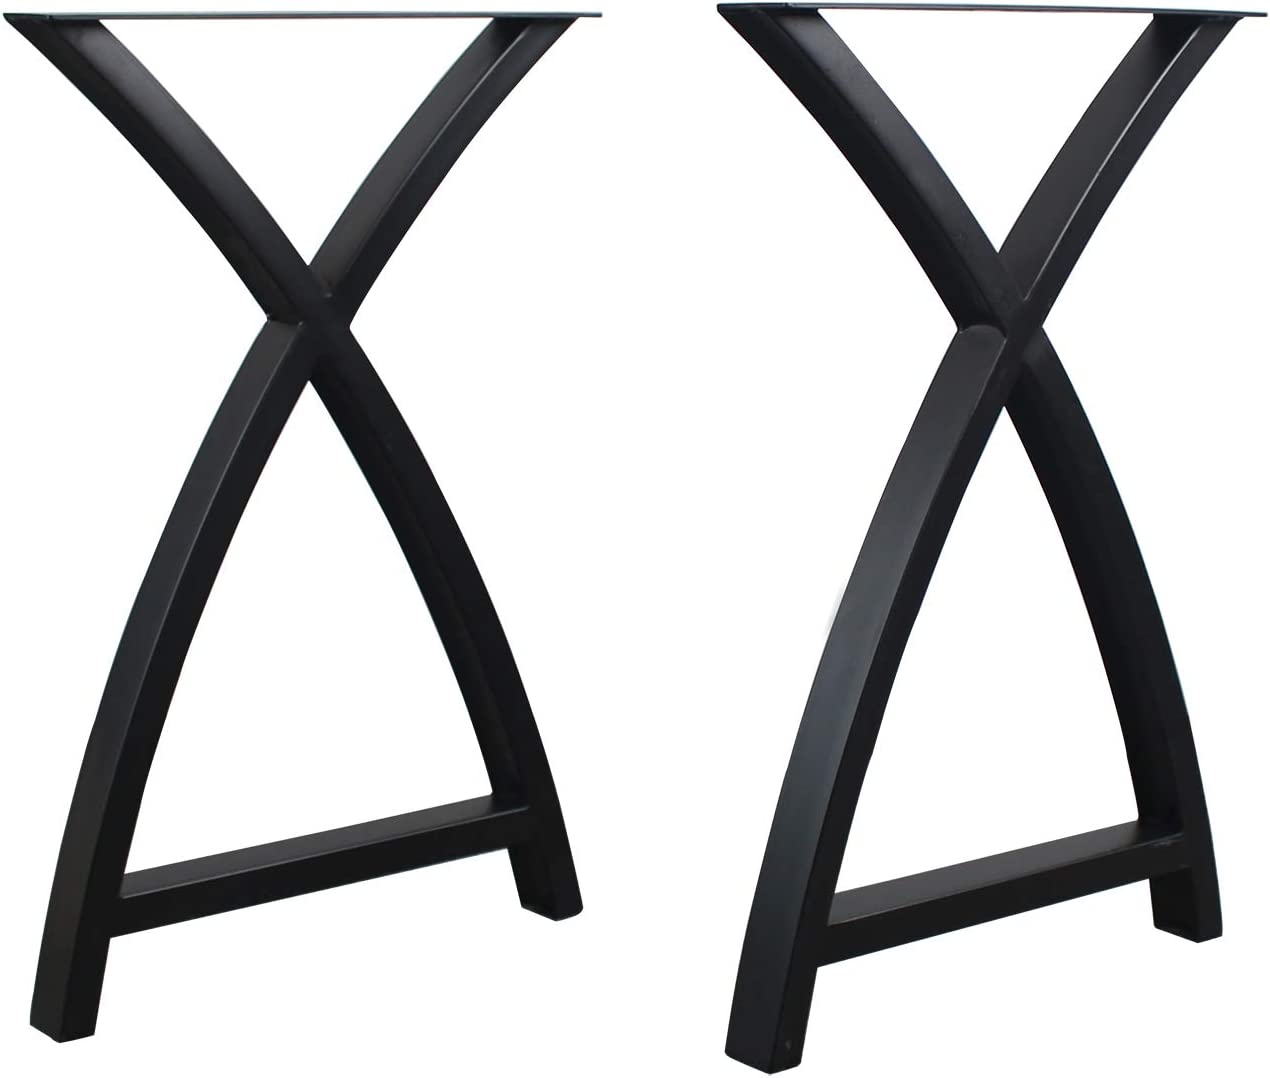 LENGEN Furniture Legs Arc Triangle Shape Table Legs,Industrial Modern Decor Metal Legs,28H x 17.7W inch Heavy Duty Desk Legs,Dining Table Legs,DIY Table with Iron Legs(2 Pieces)